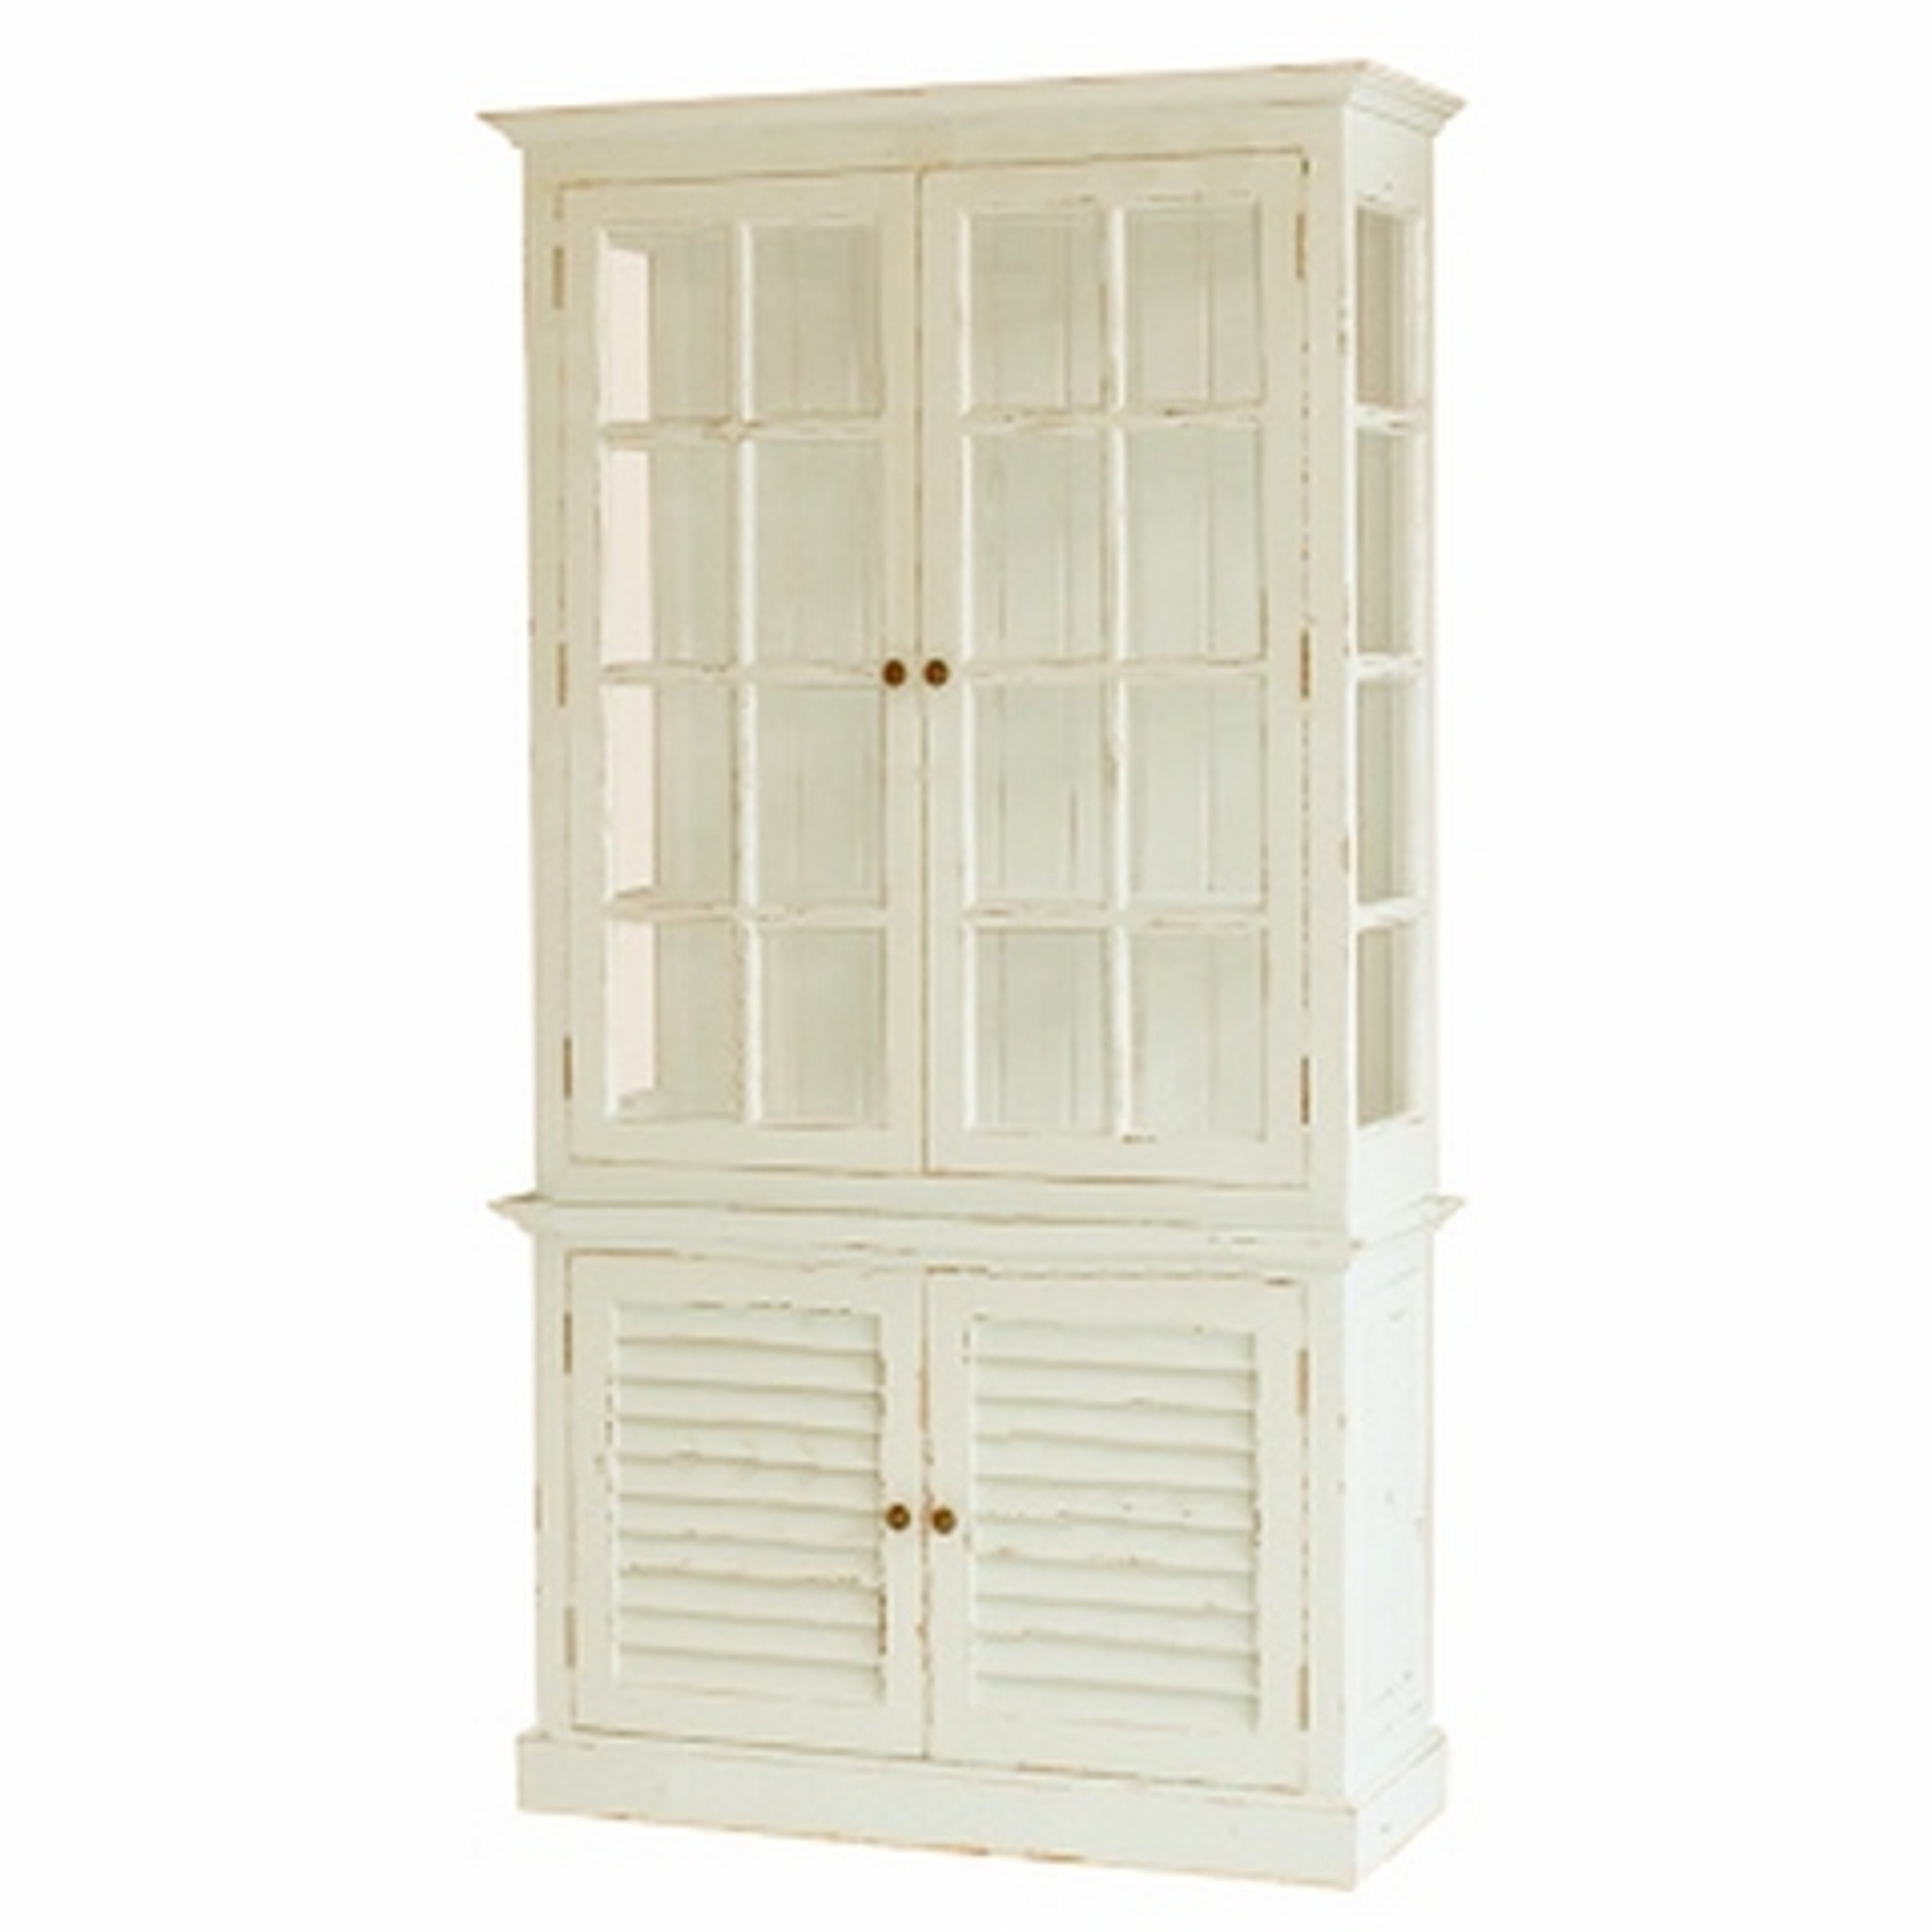 Modern Country Style Anne Turner S Cottage Living Kitchen: Hamptons 2Dr Display Cabinet With Glass